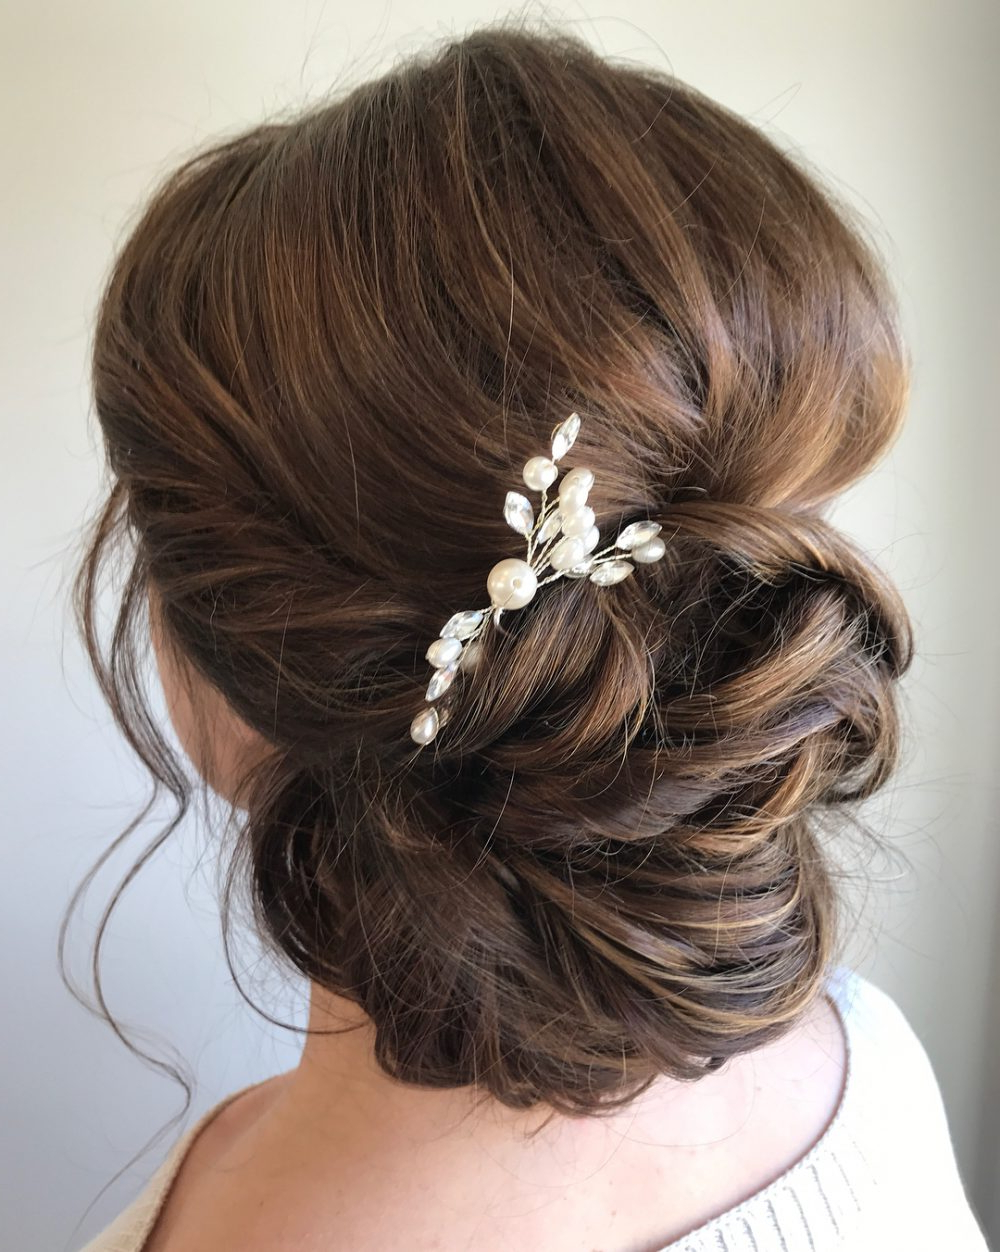 Fashionable Stylish Updos With Puffy Crown And Bangs In 33 Breathtaking Loose Updos That Are Trendy For 2019 (Gallery 5 of 20)